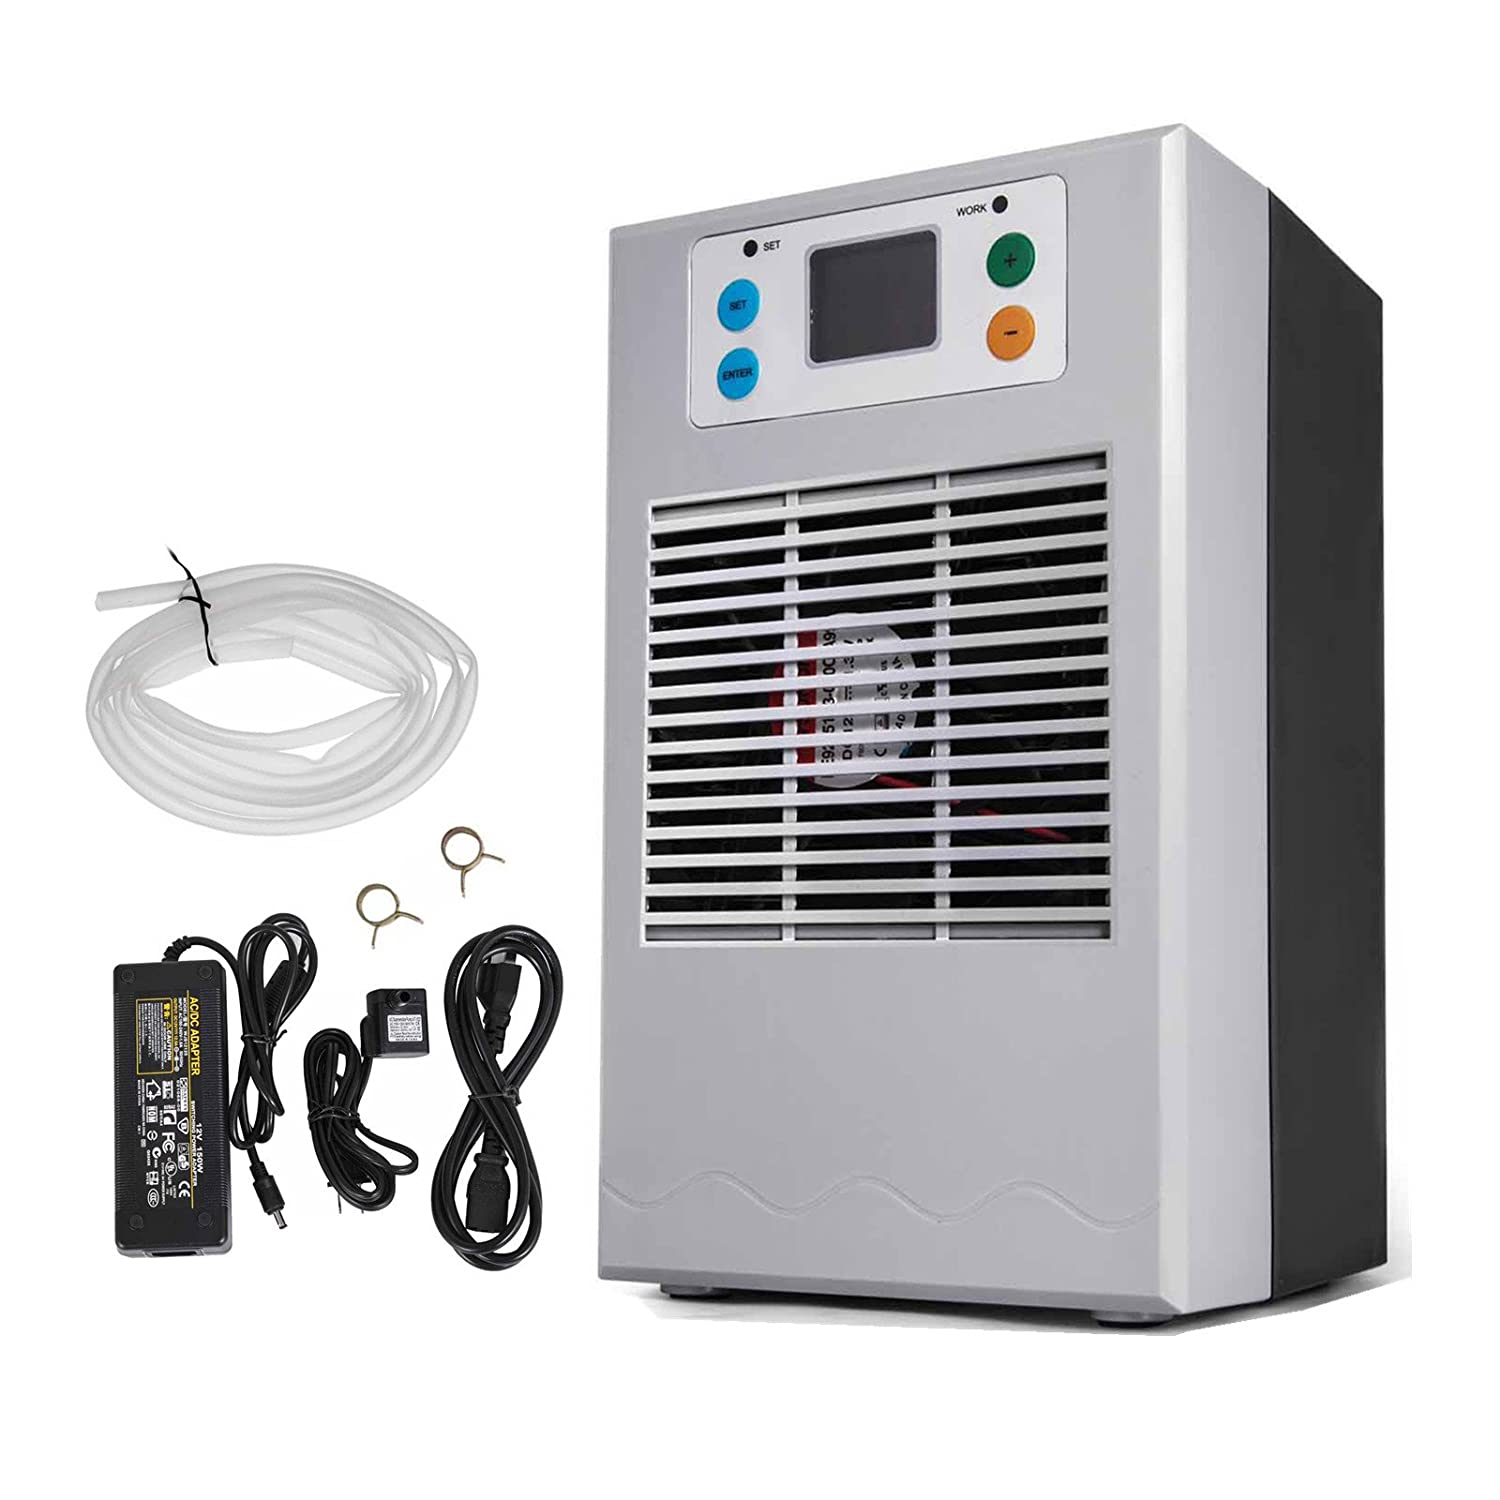 Happybuy 35L 100W Aquarium Water Chiller with Pump Kit Fish Tank Chiller Water Cooling Machine Shrimp Tank Water Cooler for Fresh Water Salt Water Plant Tank Hydroponic Chiller (100W)